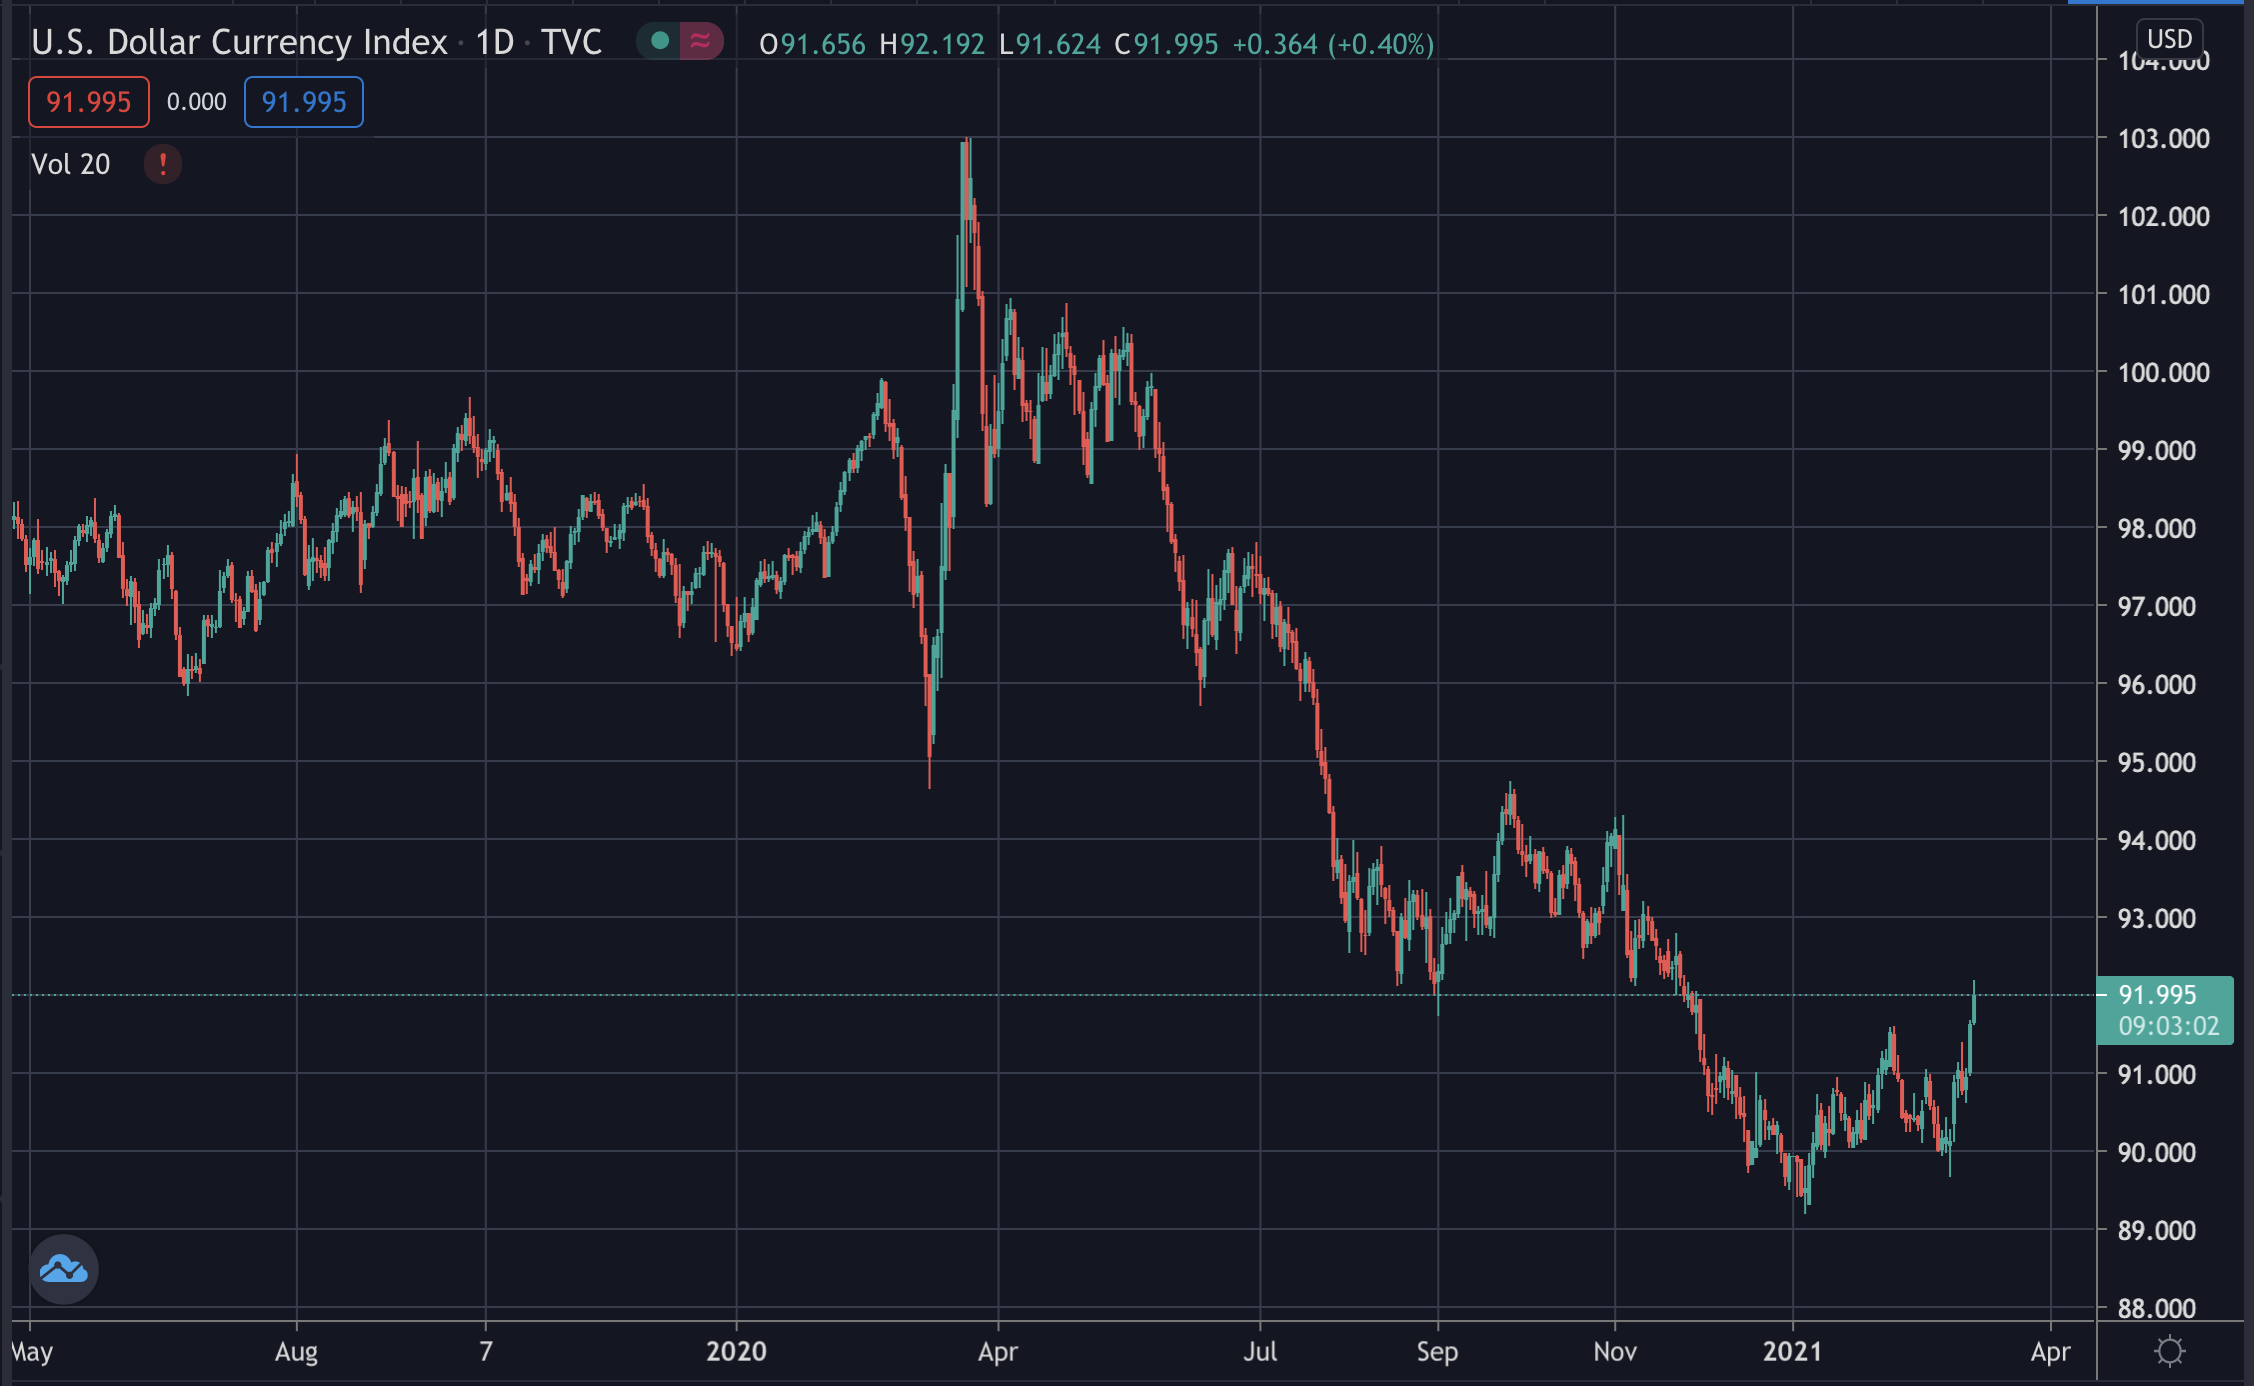 The dollar strength index, March 2021